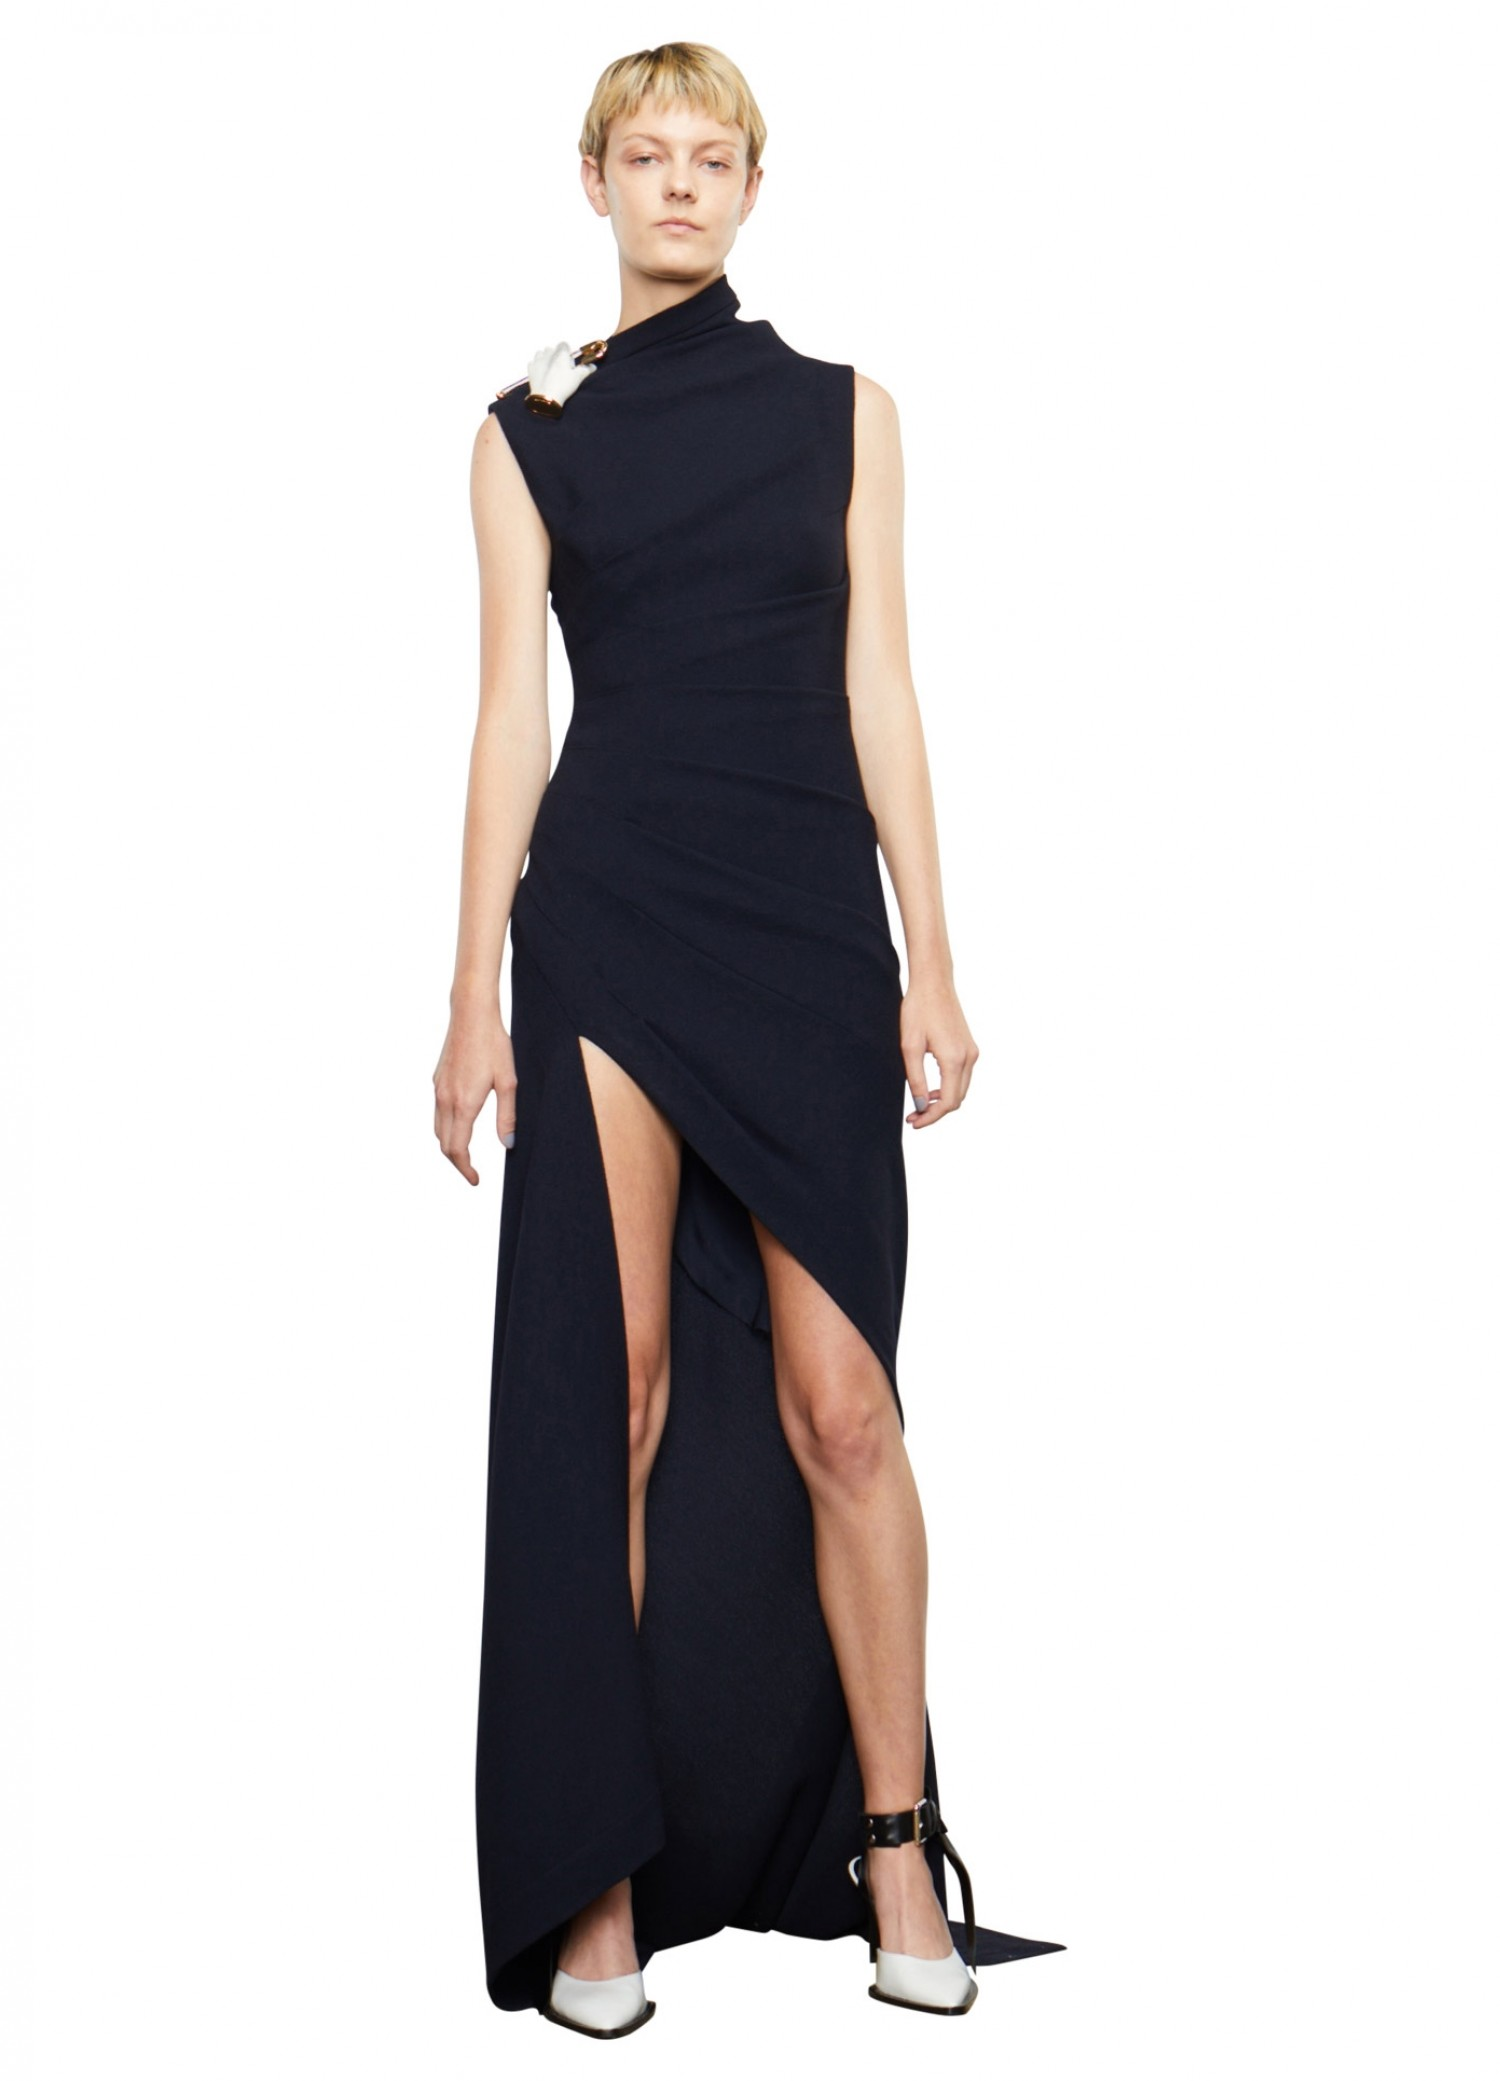 MONSE Wool Sleeveless Dress on Model Front View